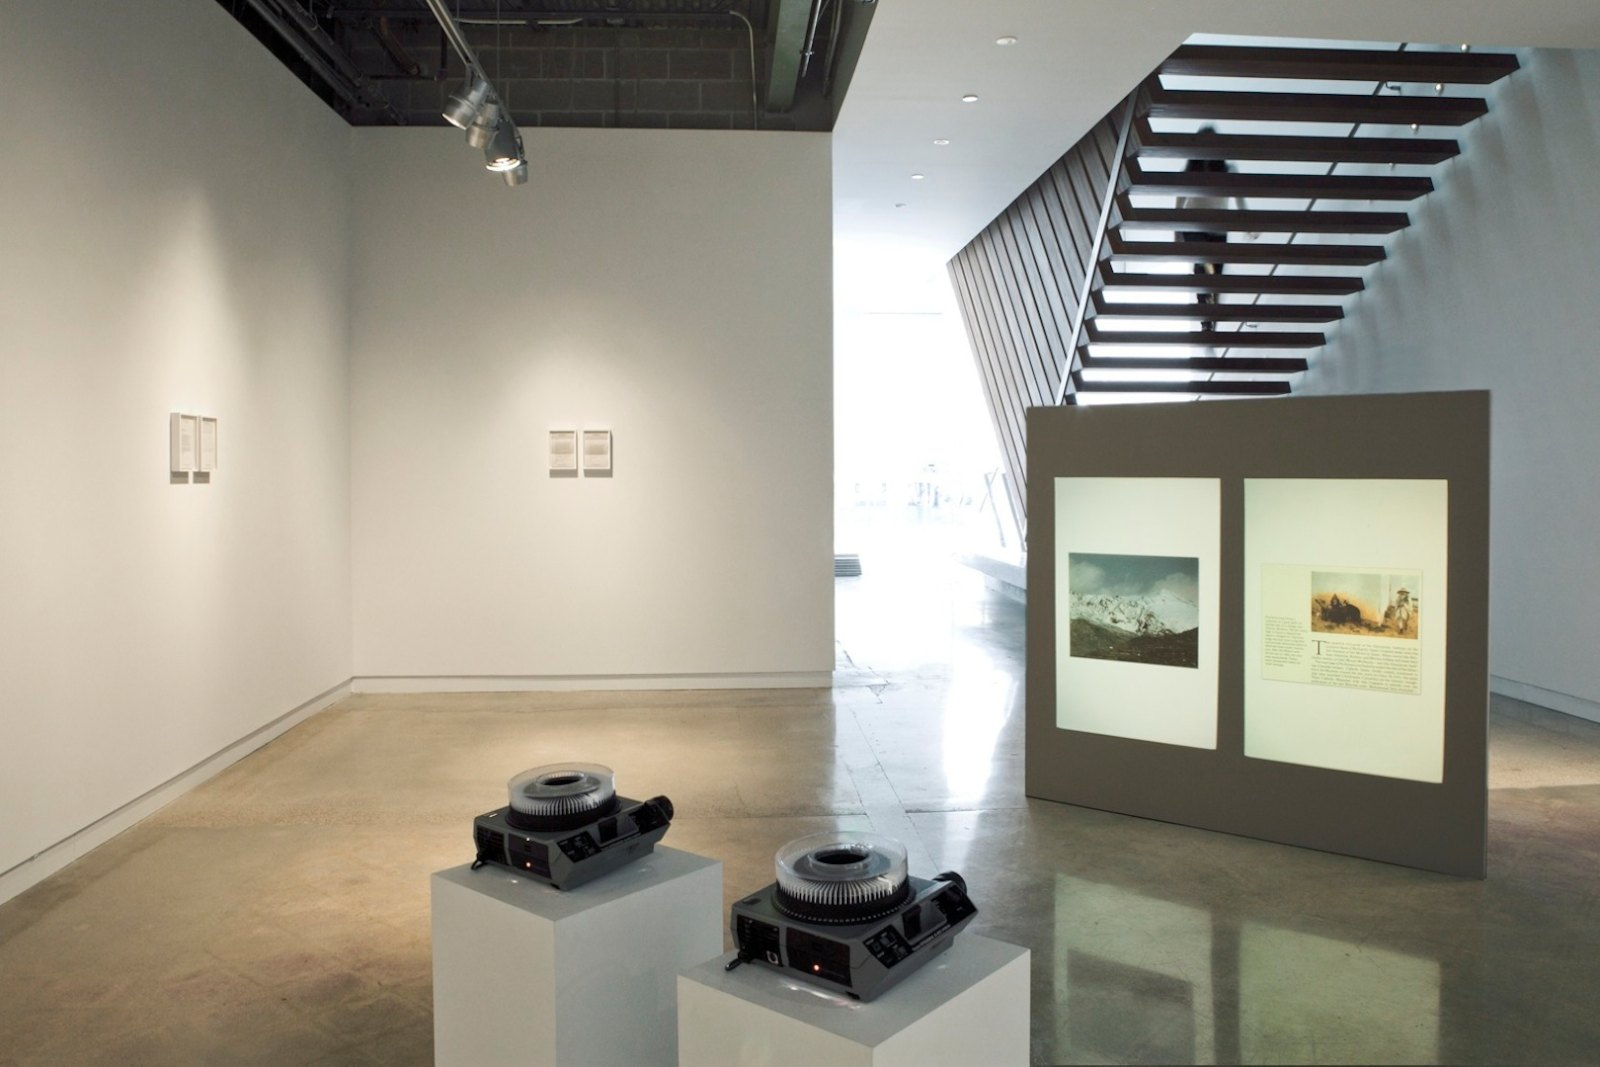 National Geographic (with Letters from Dr. Bamberger), 2009, double slide projection and printed text, variable installation, ed.3. Installation view, Arthouse at the Jones Center, Austin, USA, 2011